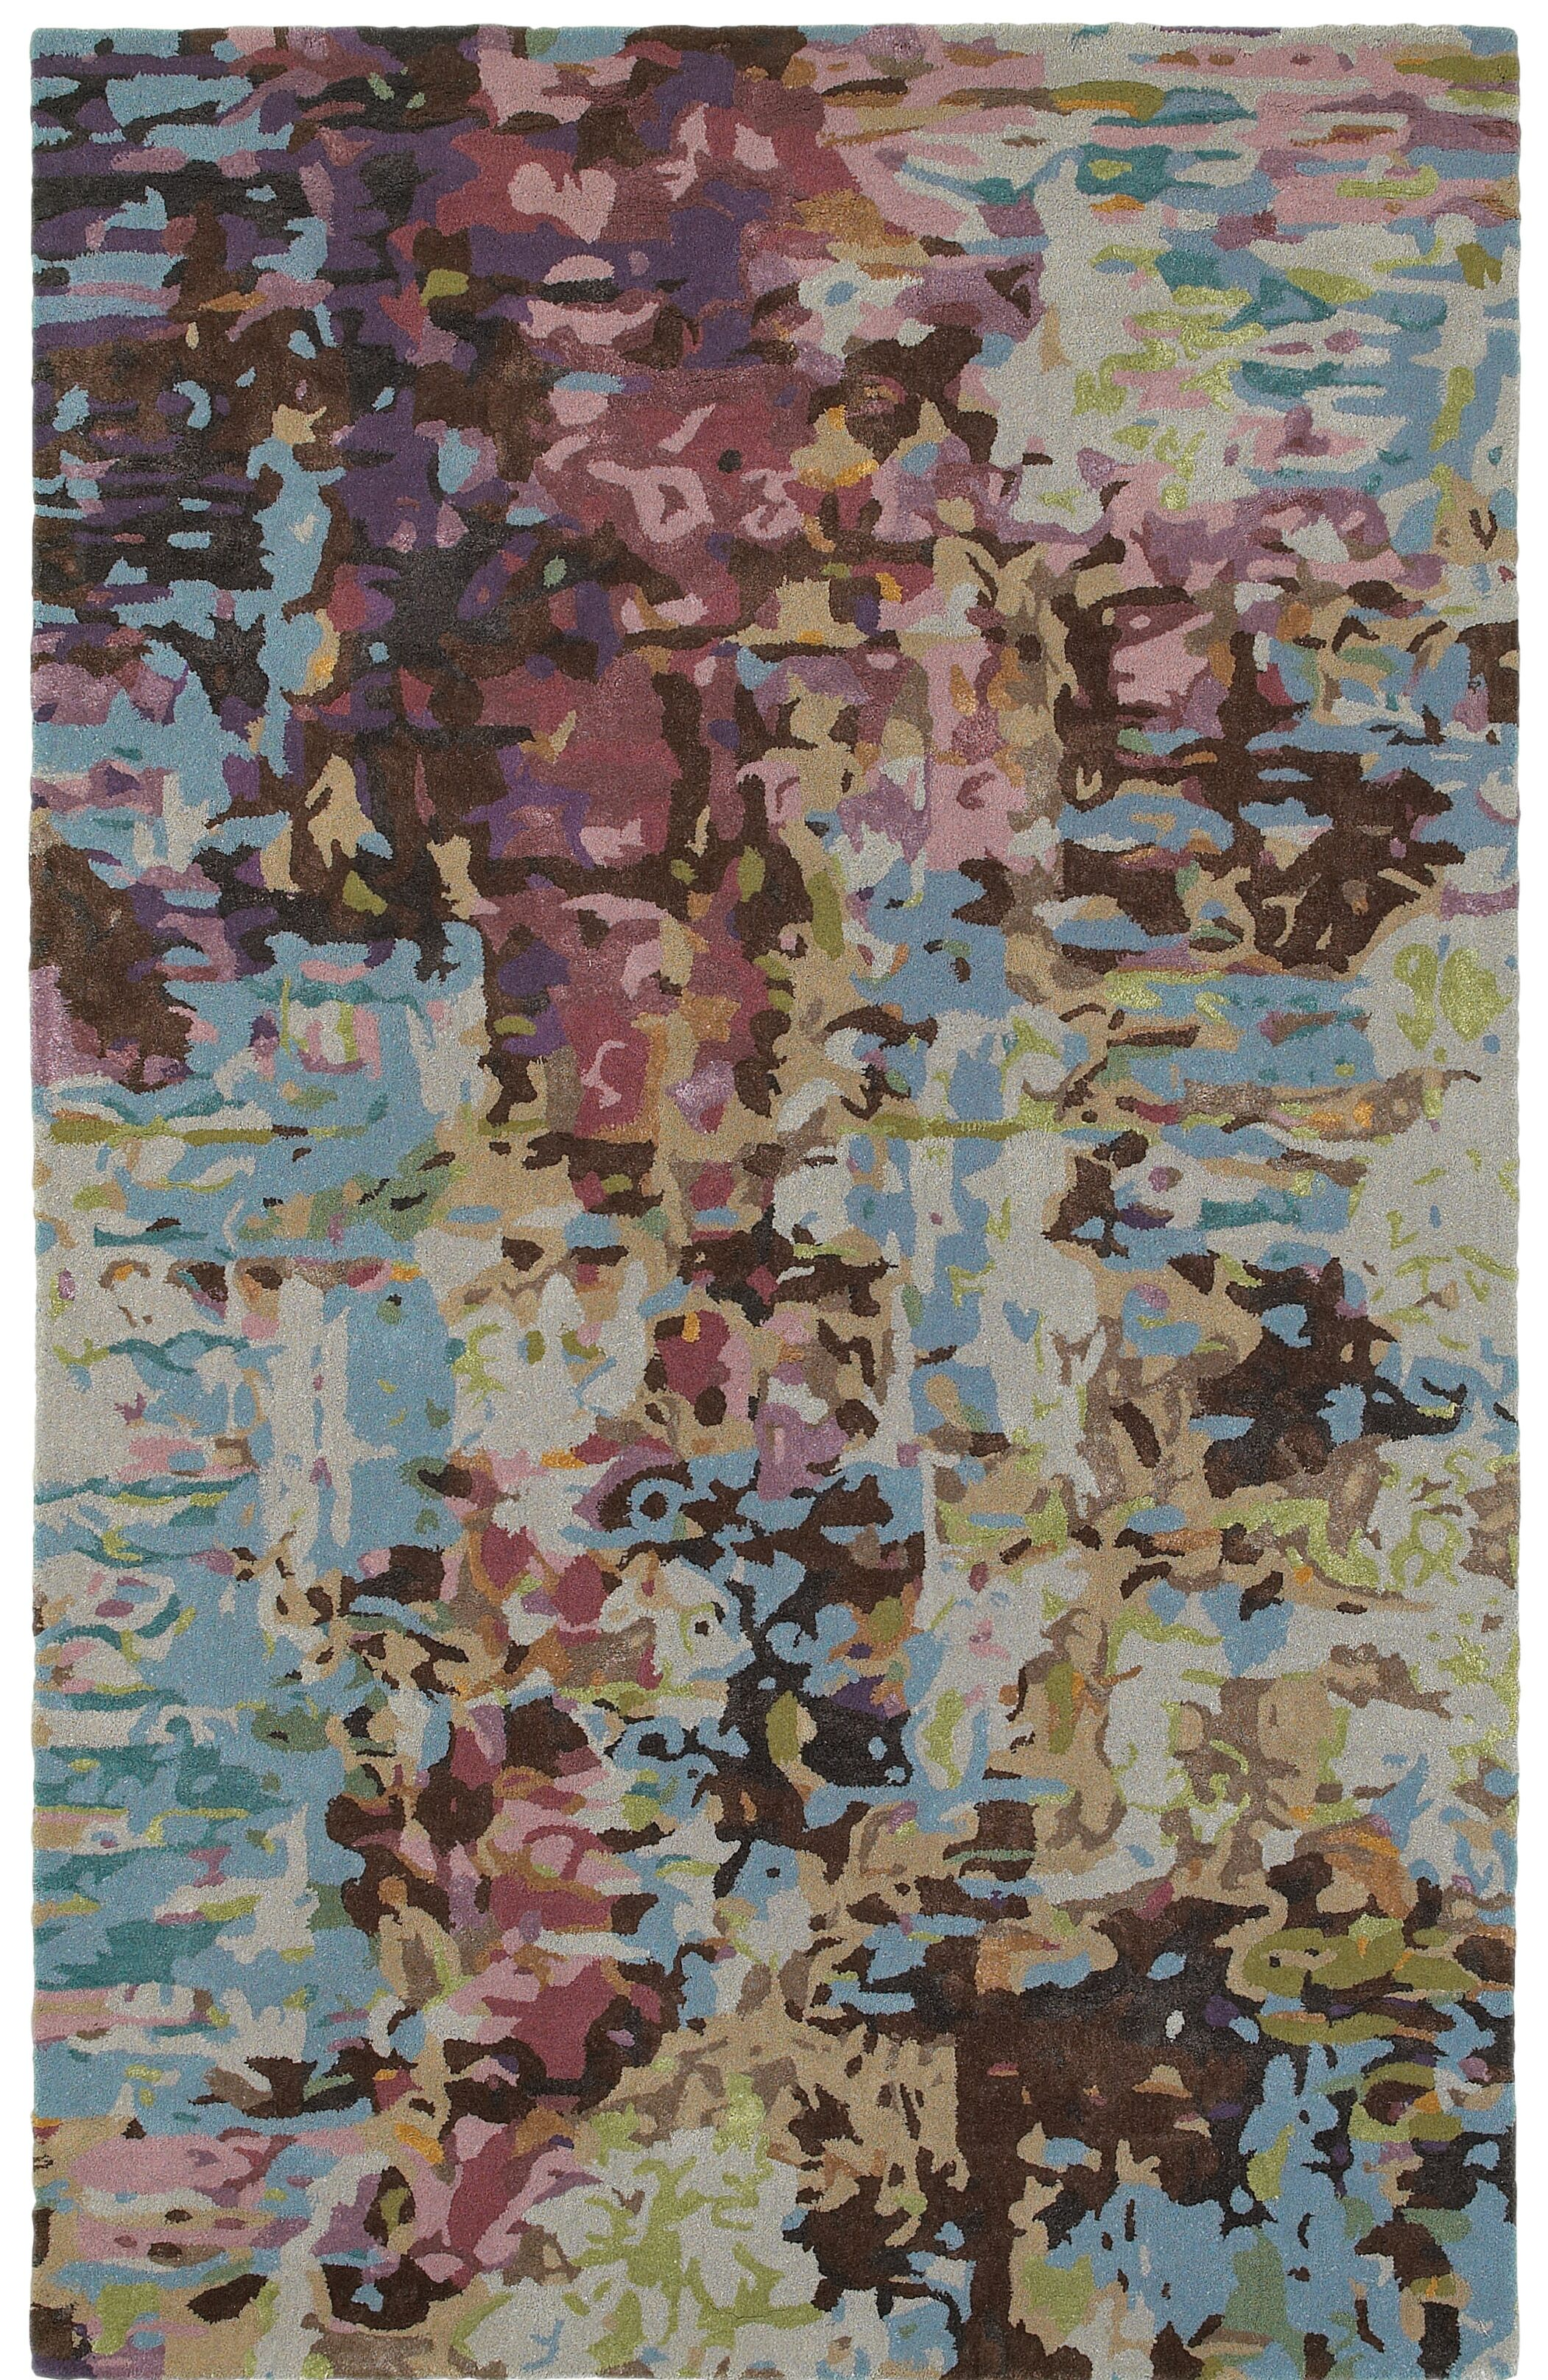 Wora Hand-Crafted Blue Area Rug Rug Size: Rectangle 10' x 12'11